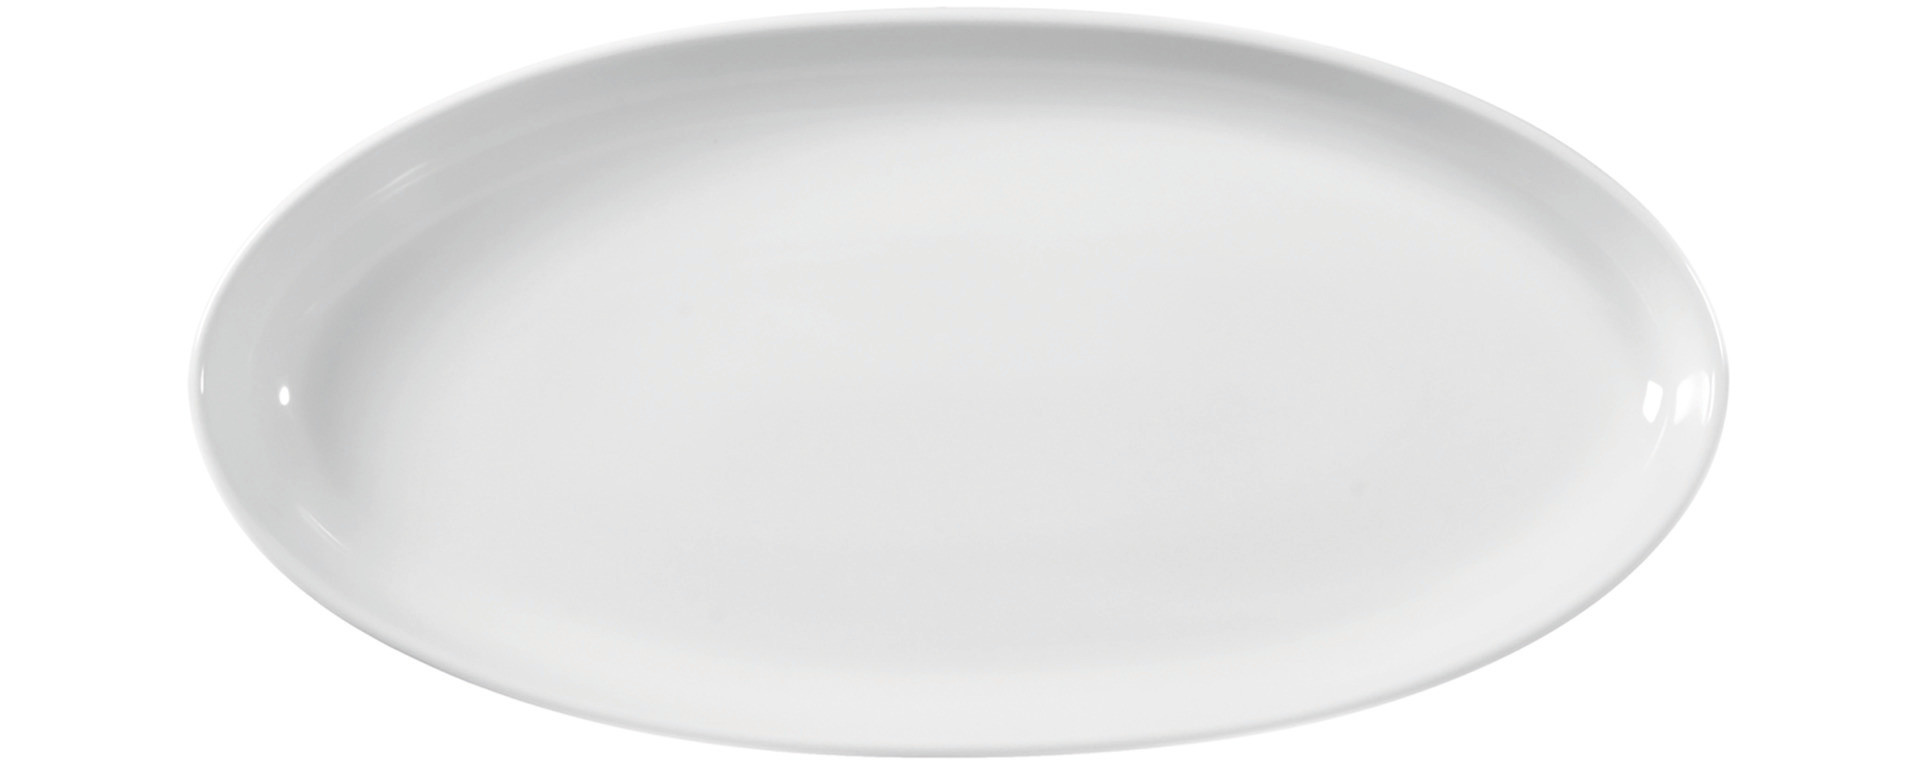 Buffet Gourmet, Platte oval 500 x 248 mm